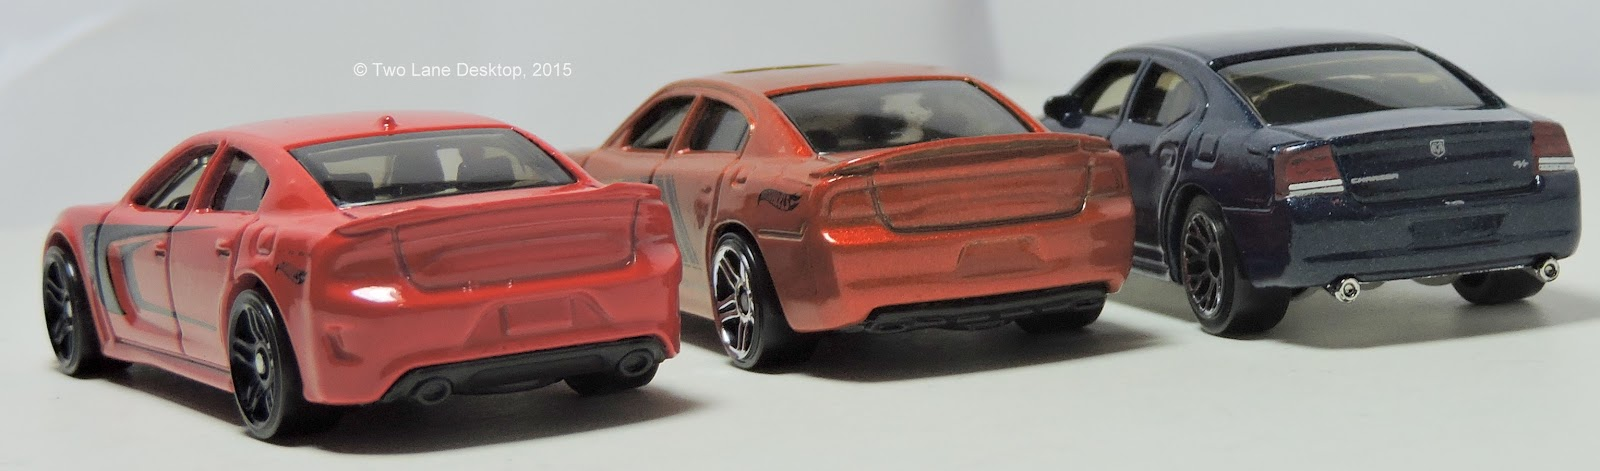 Charger SRT Hellcat, alongside Hot Wheels 2011 Charger R/T and